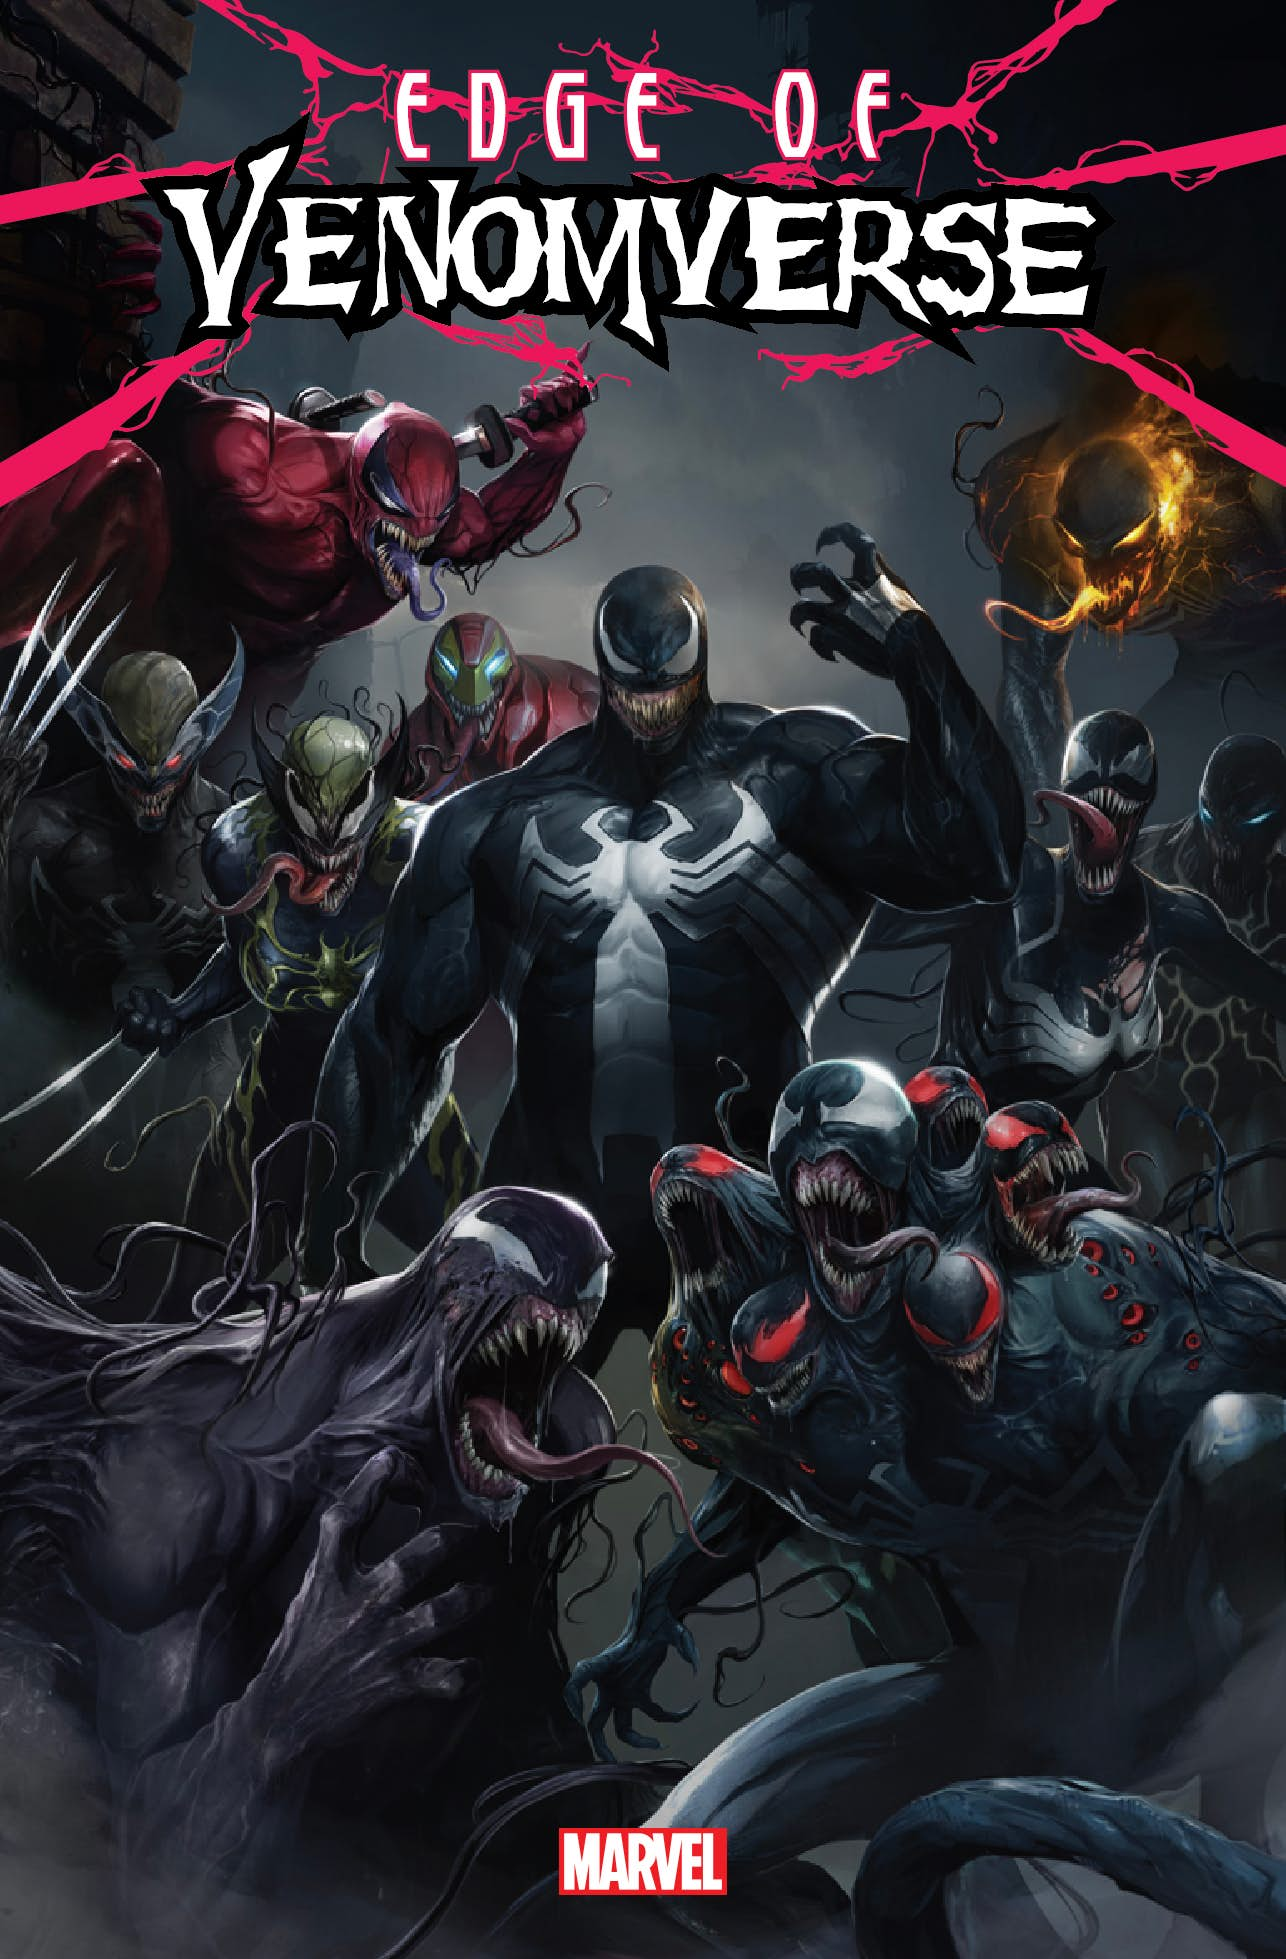 Edge-of-Venomverse-Mattina-Promo